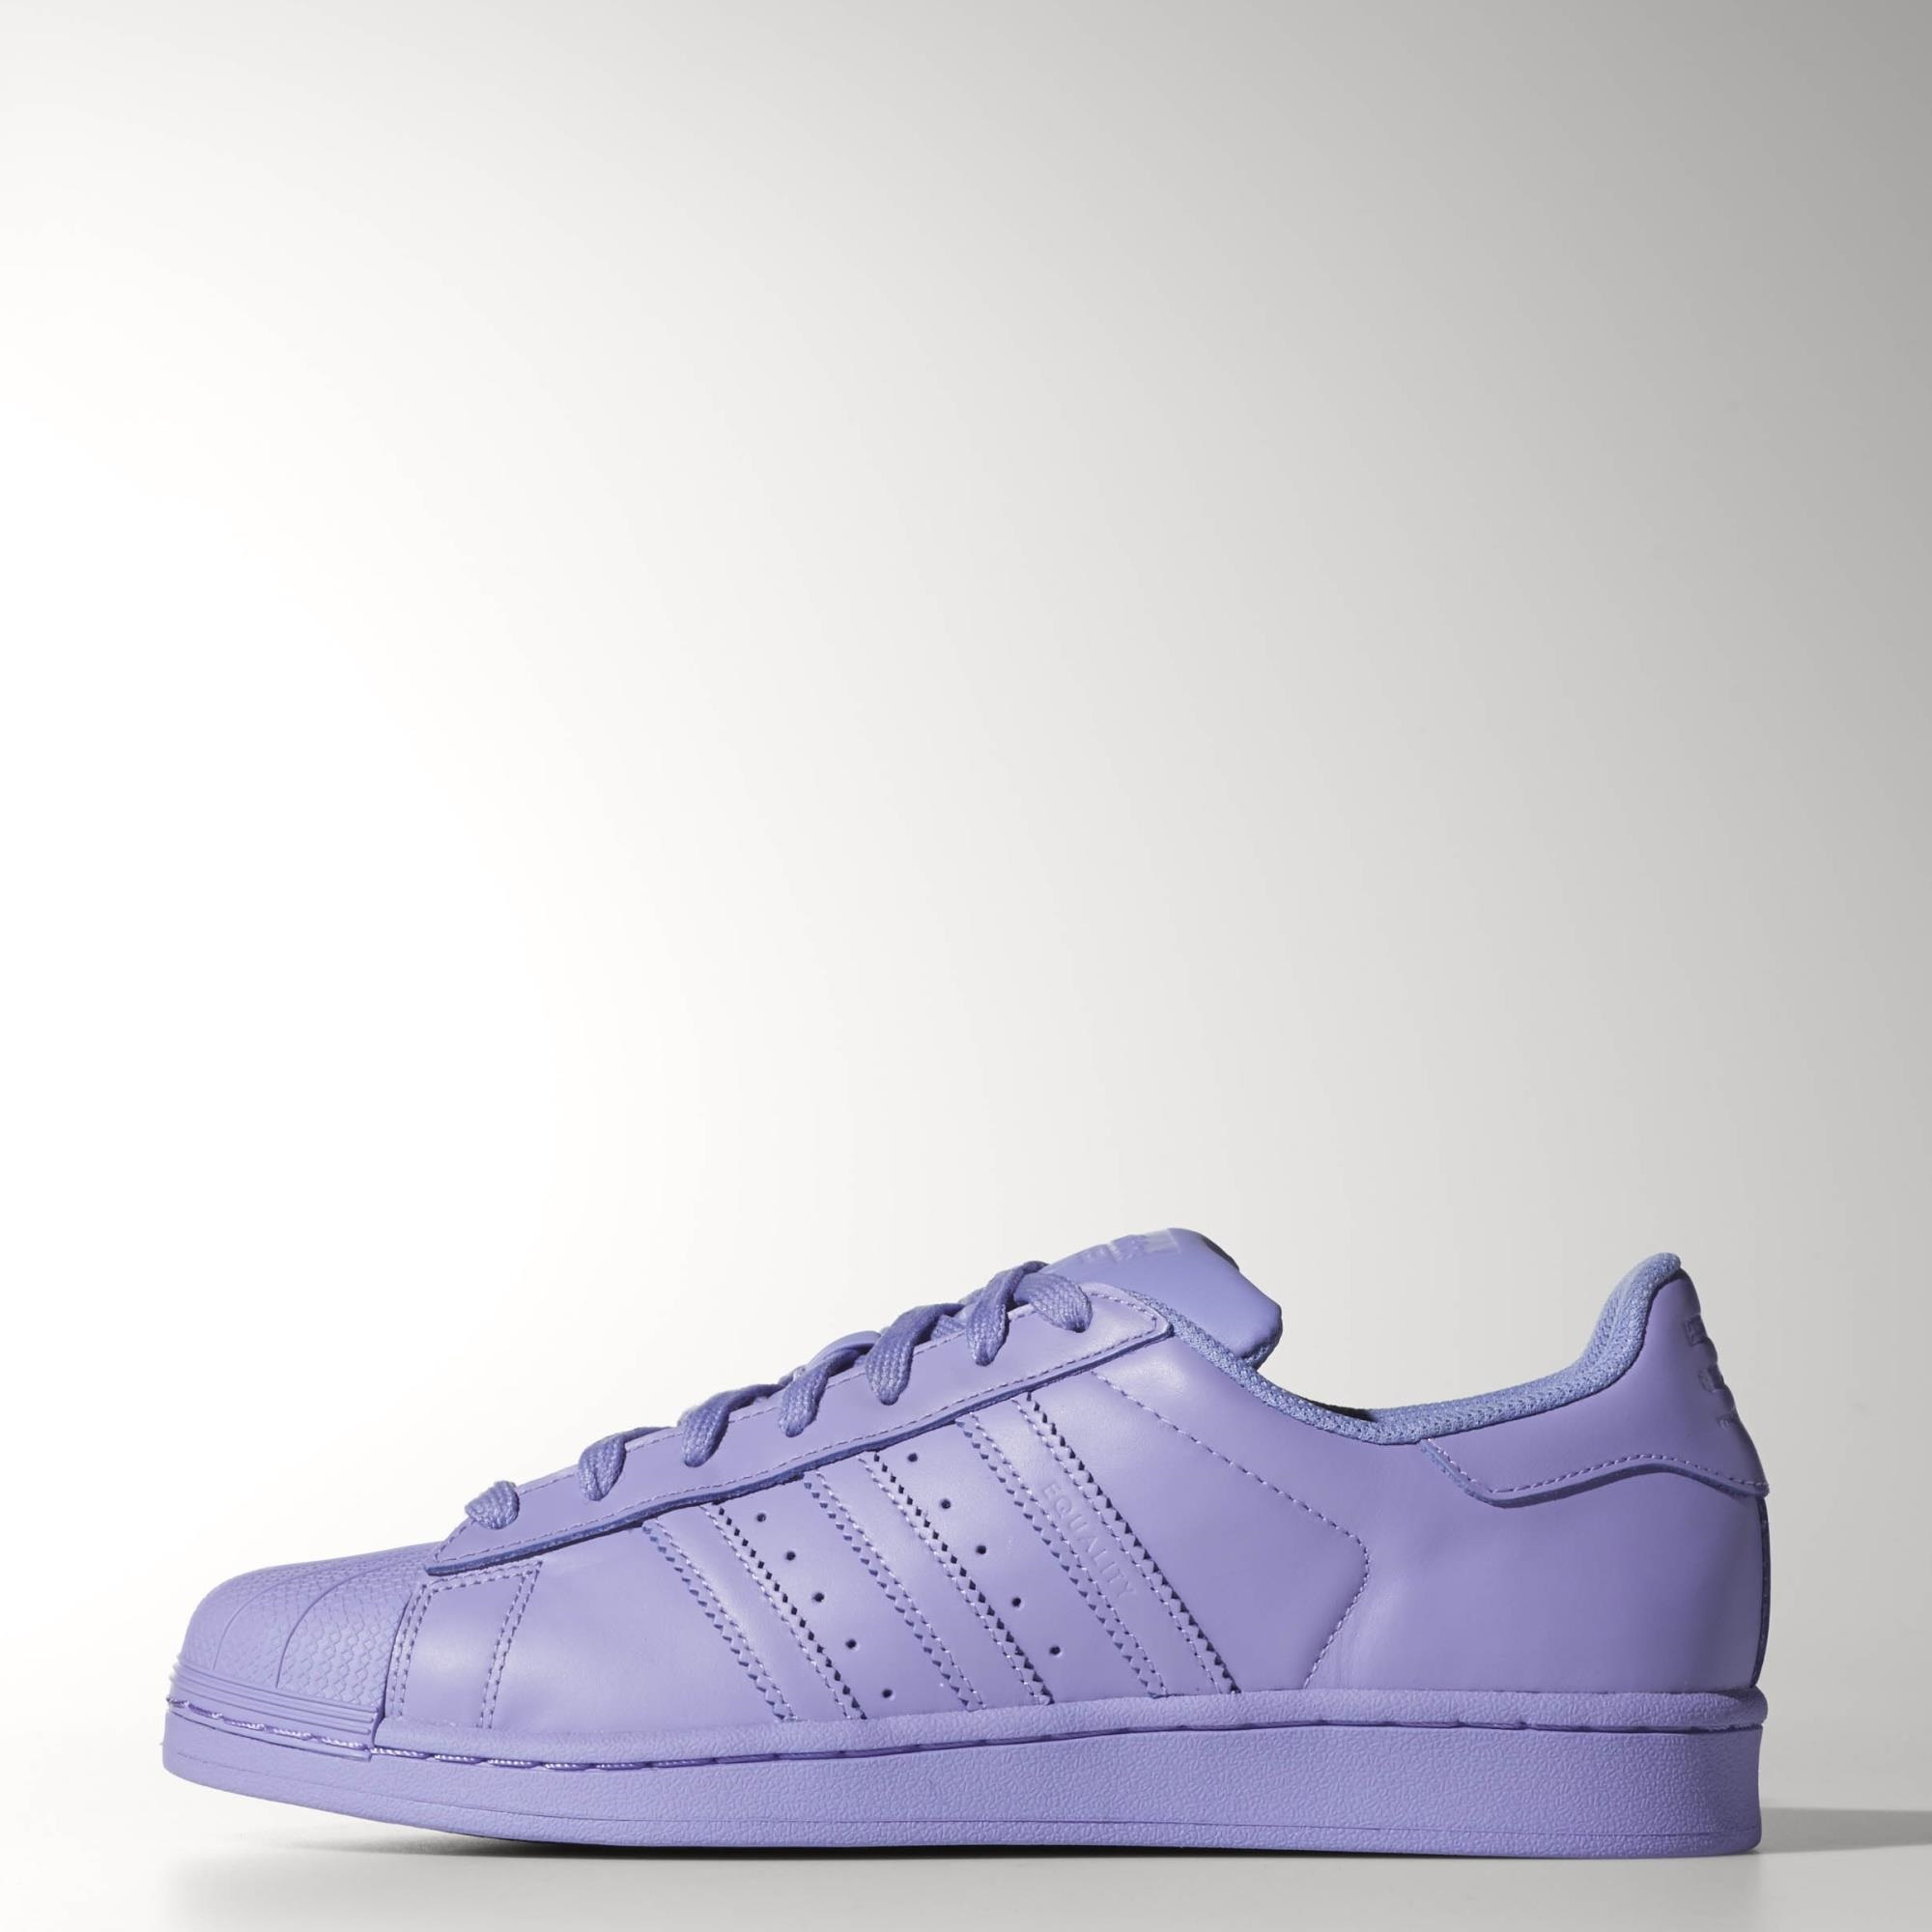 adidas superstar shoes purple off 58% - www.